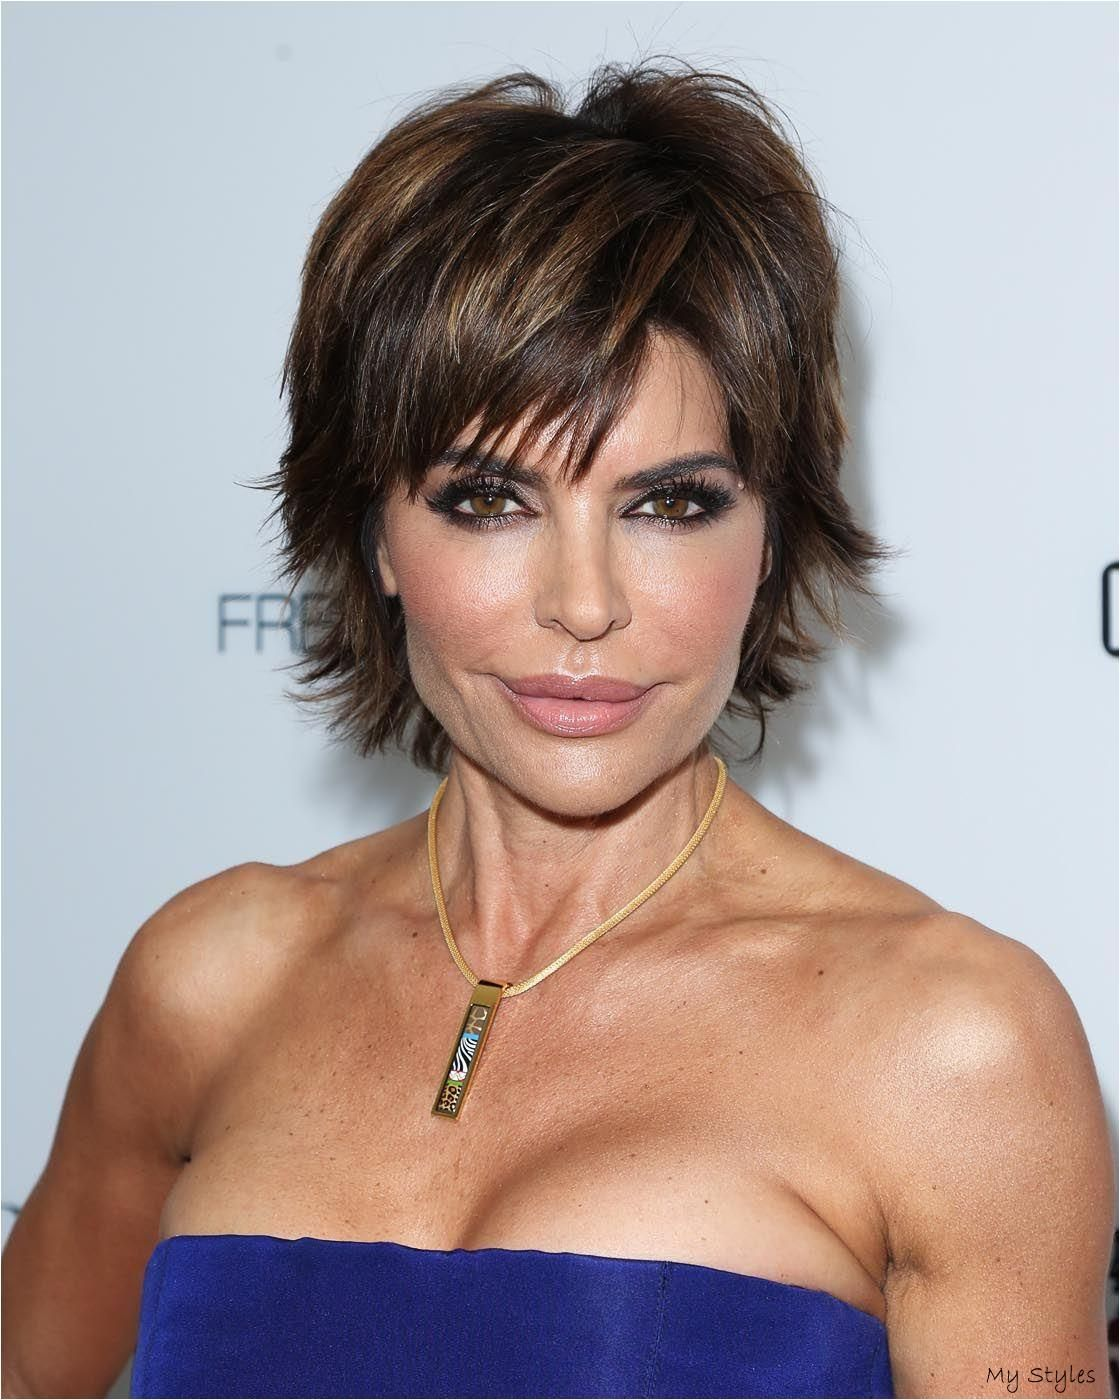 These Are The Best Haircuts For Women In Their 40s 50s And 60s And They Re Short A In 2020 Short Hair Styles For Round Faces Short Hair Styles Older Women Hairstyles